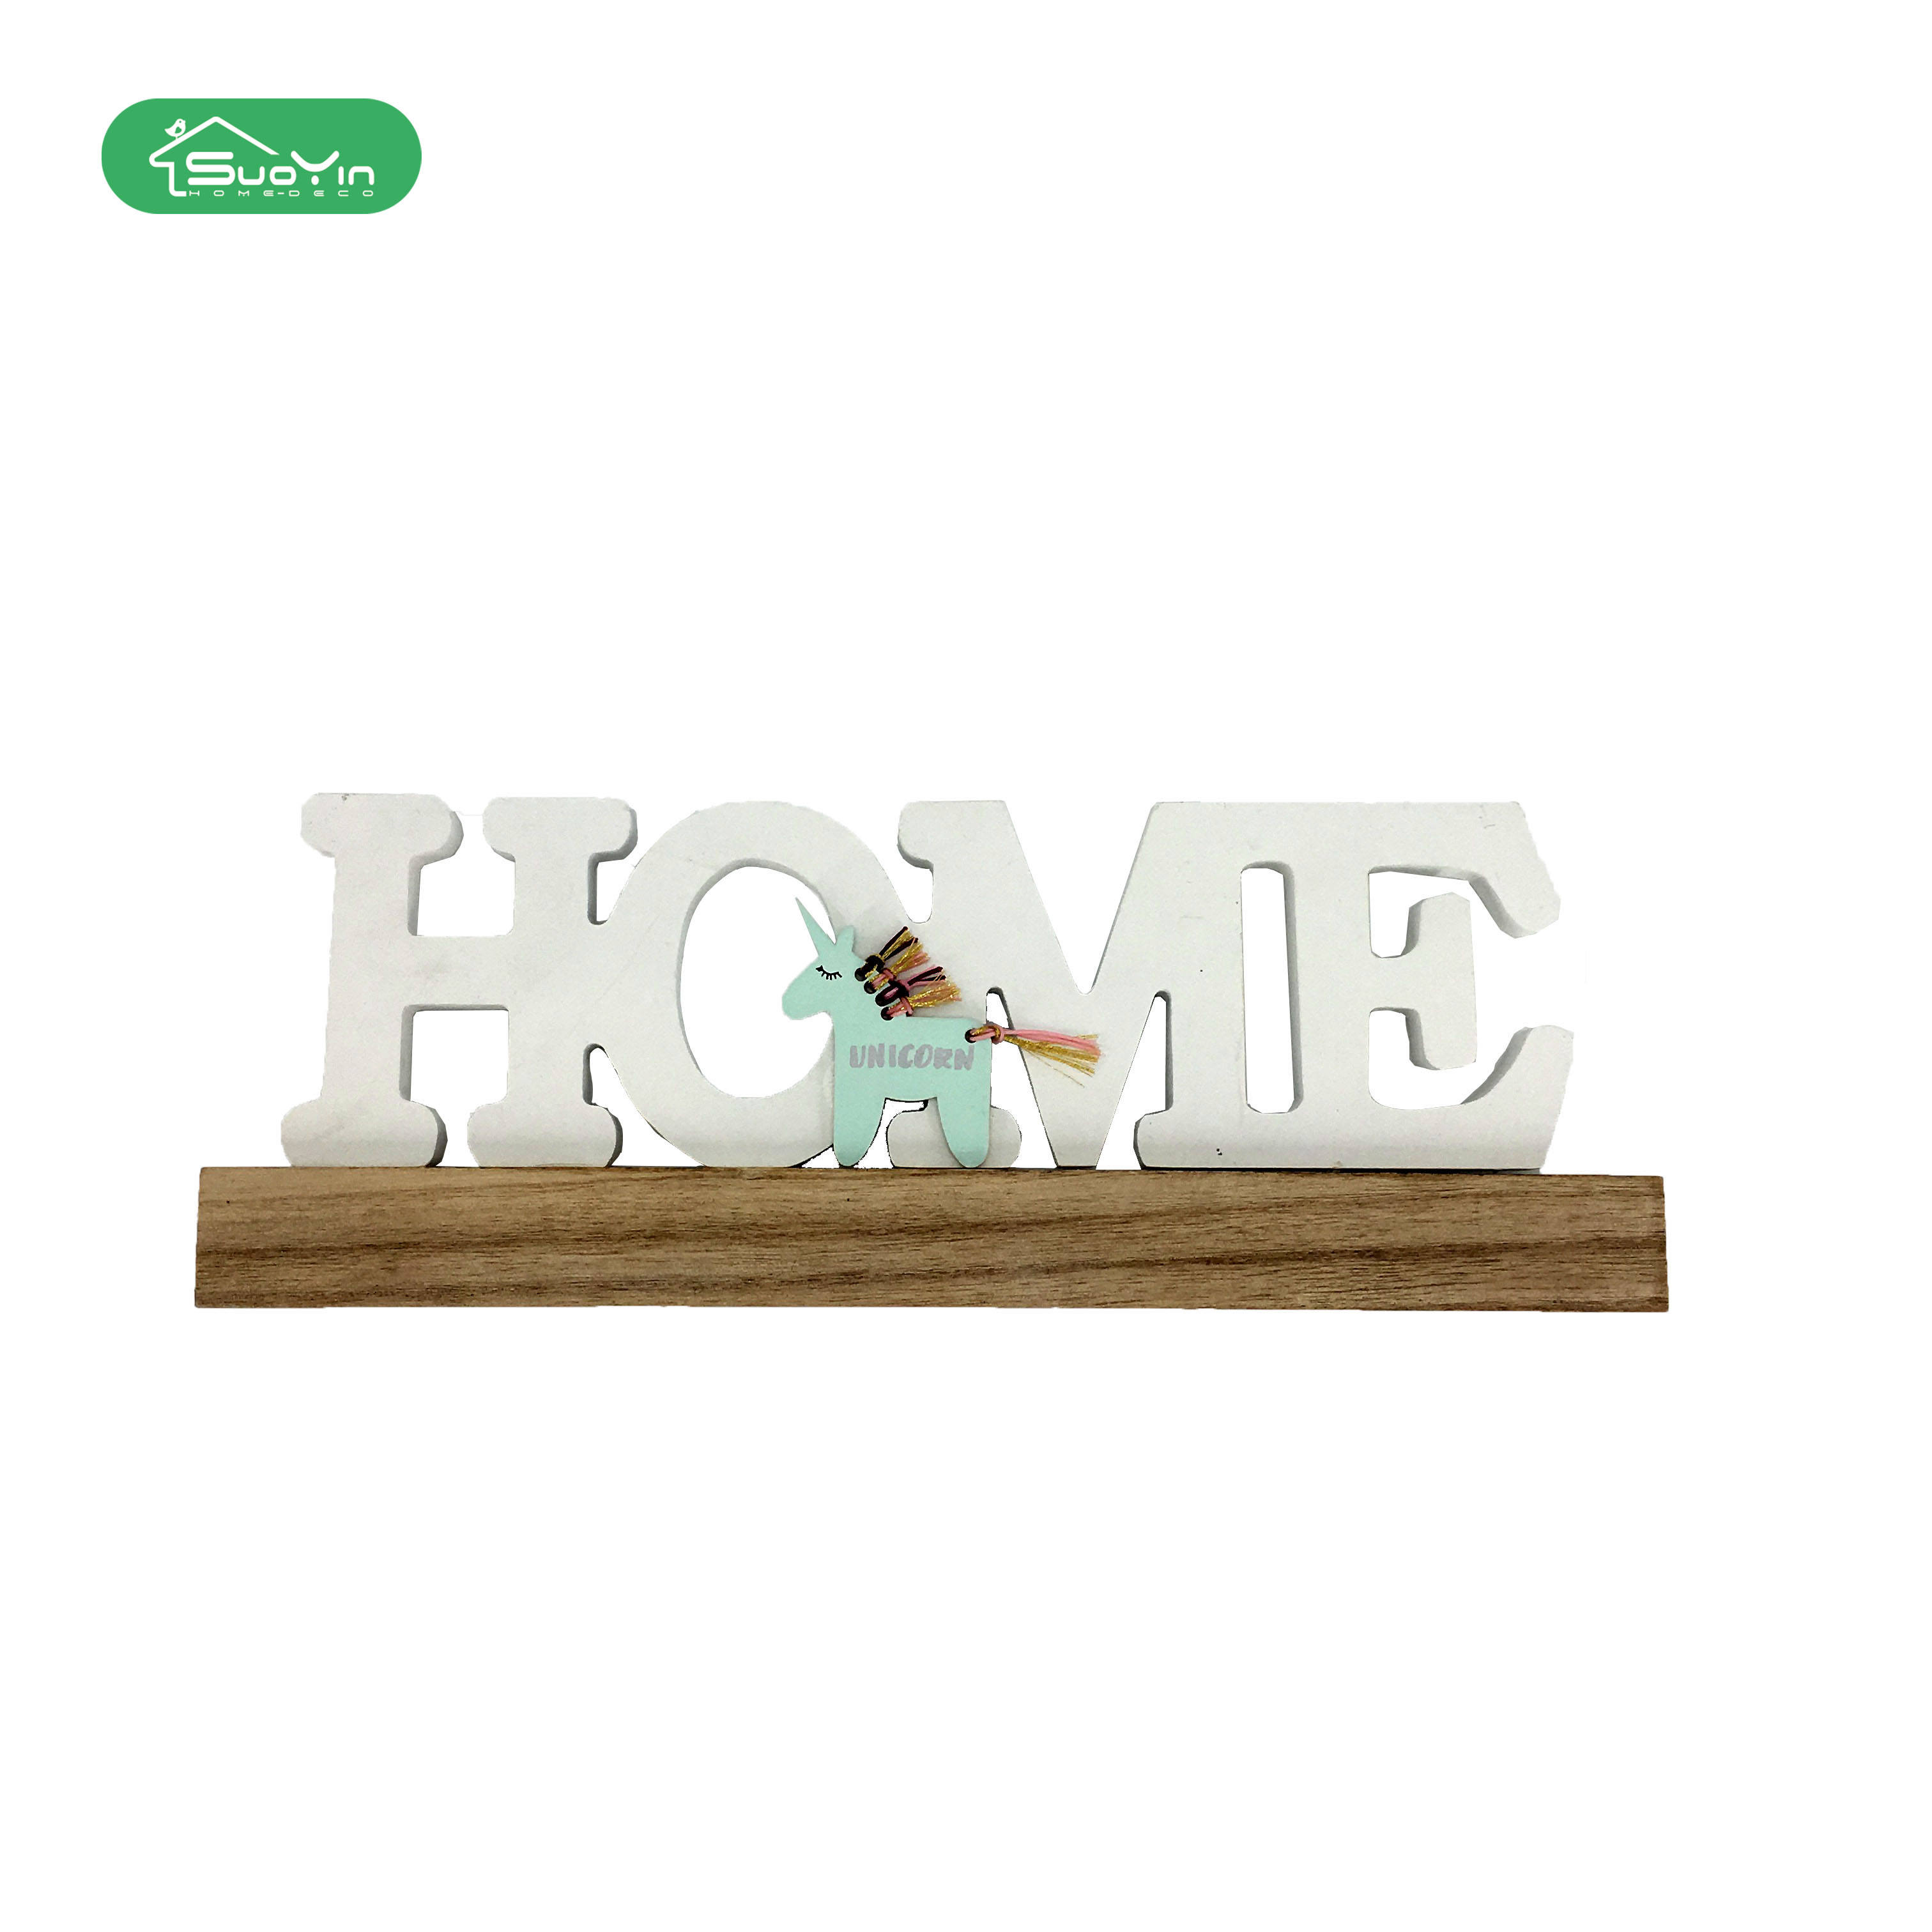 Home Decoratie Hout Ambacht Staan Wit Home MDF Letters